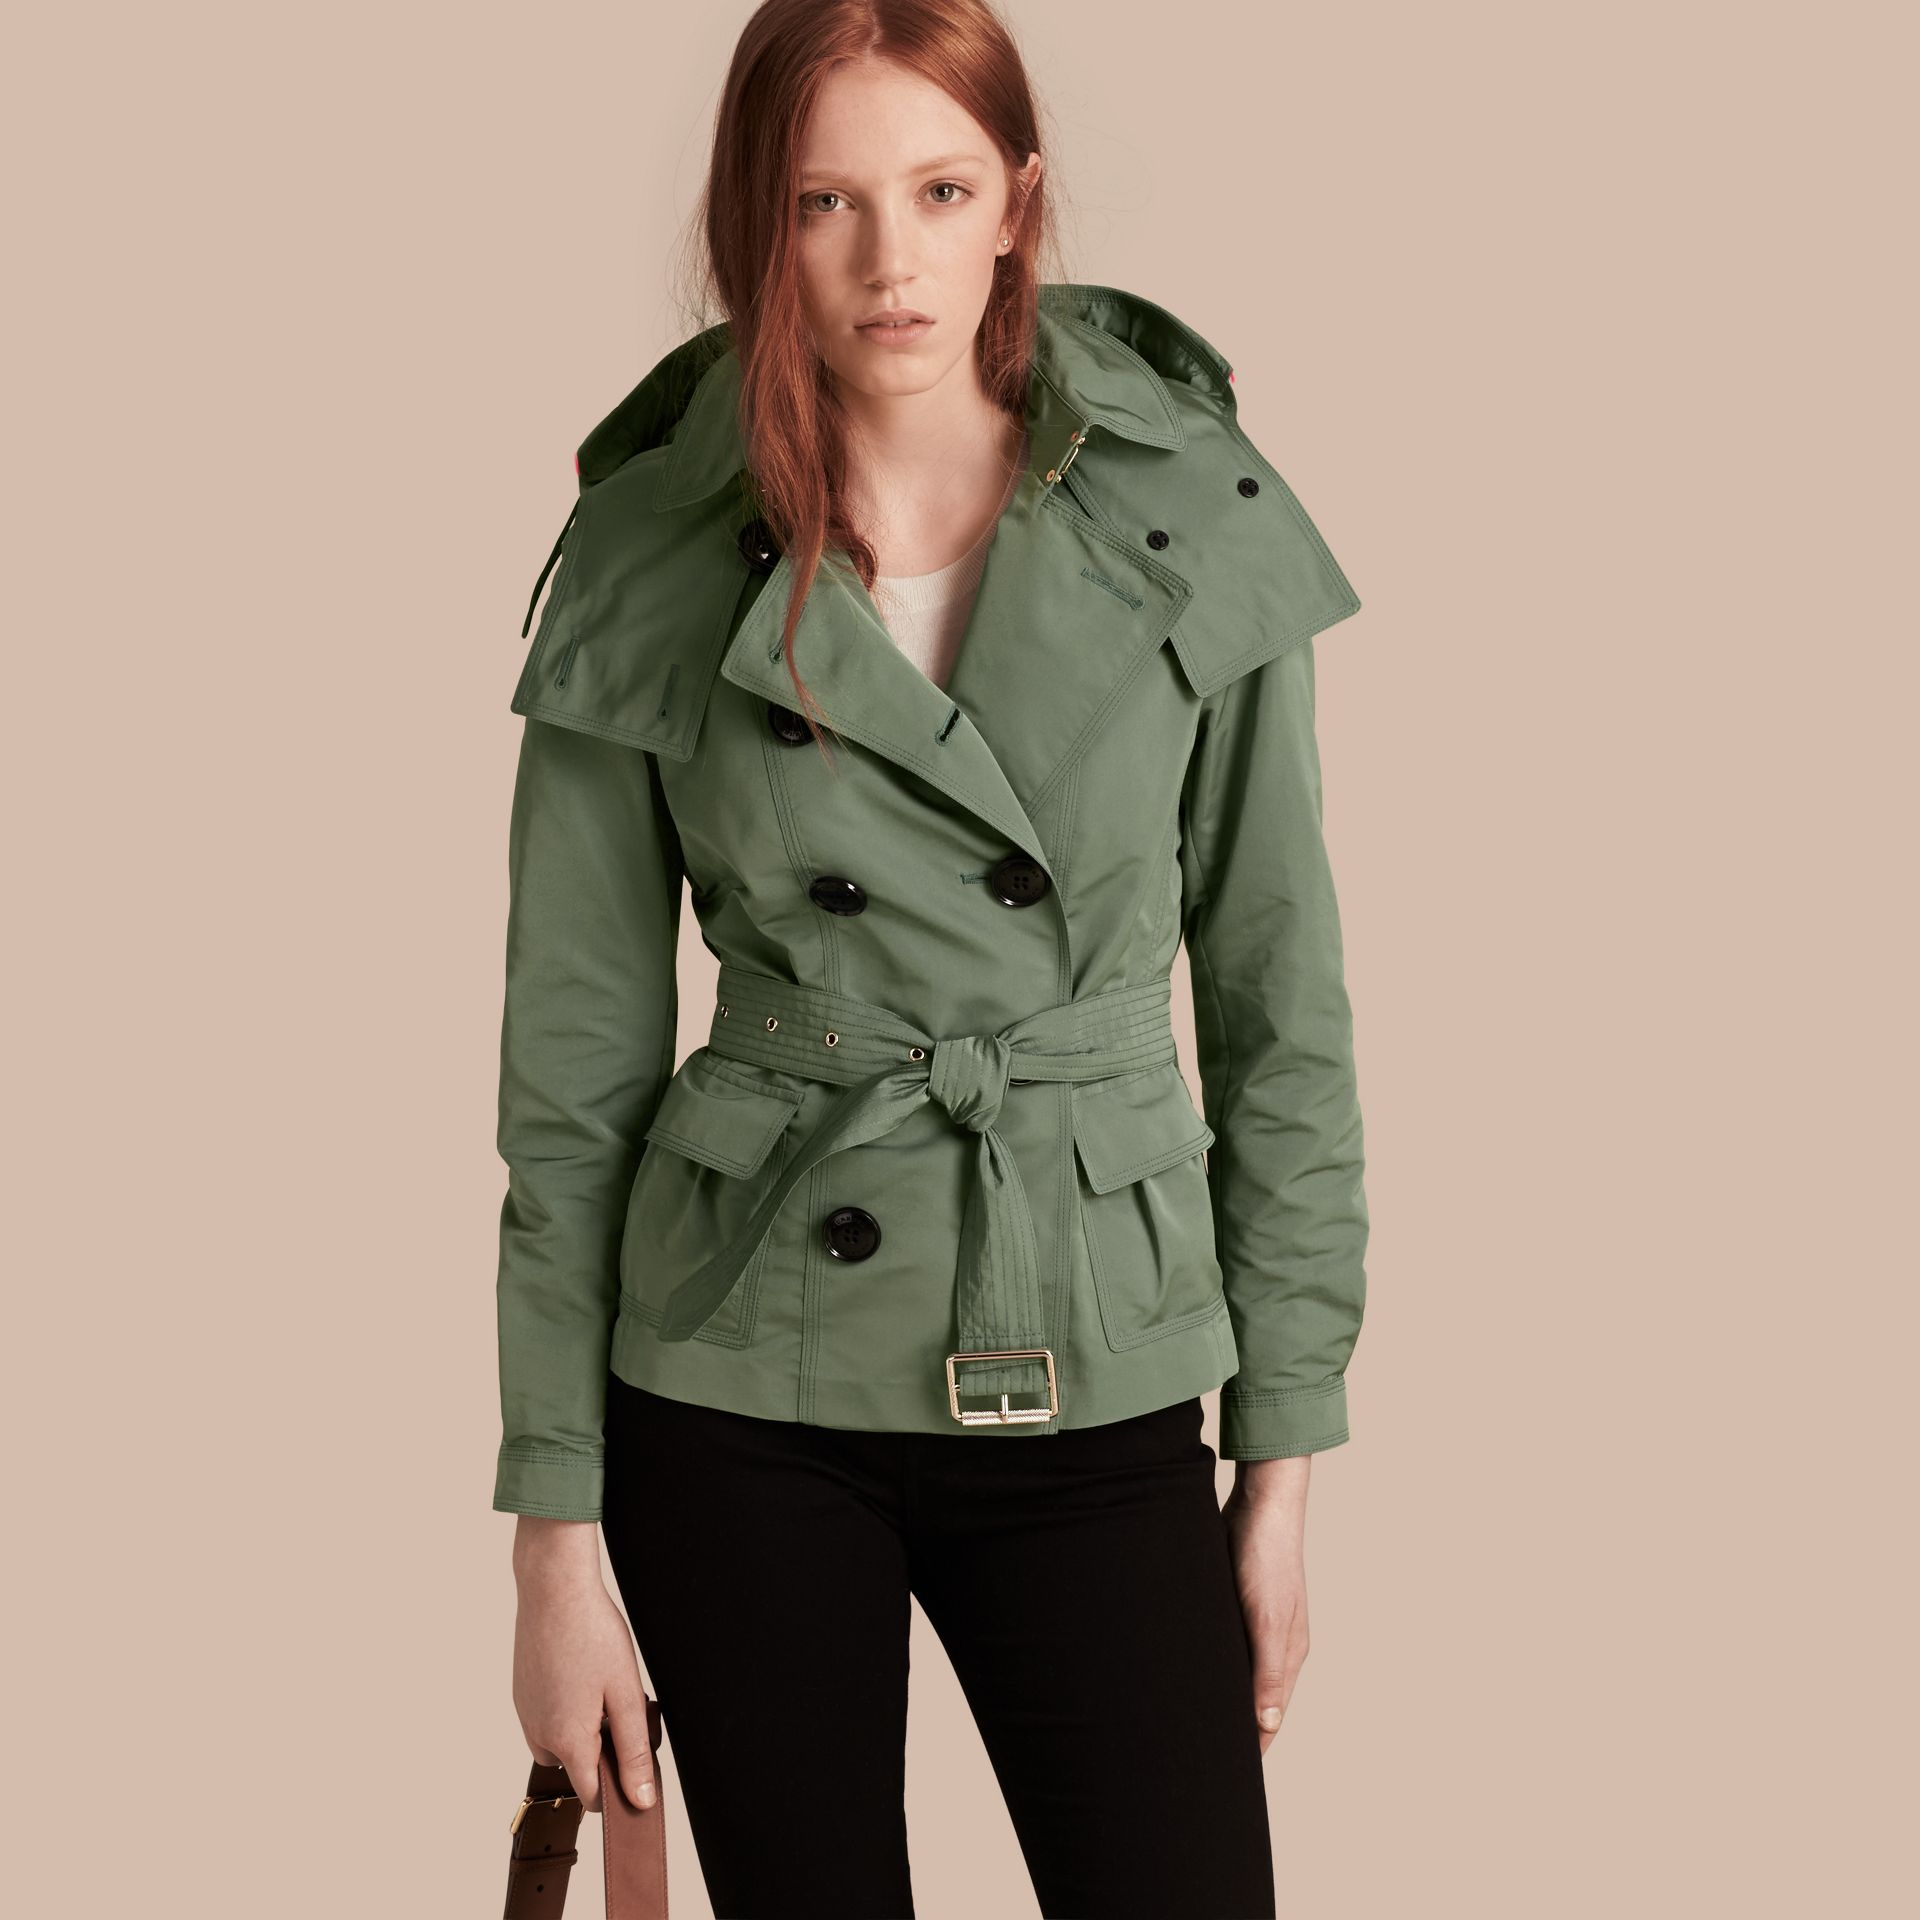 Eucalyptus green Showerproof Taffeta Trench Jacket with Detachable Hood Eucalyptus Green - gallery image 1